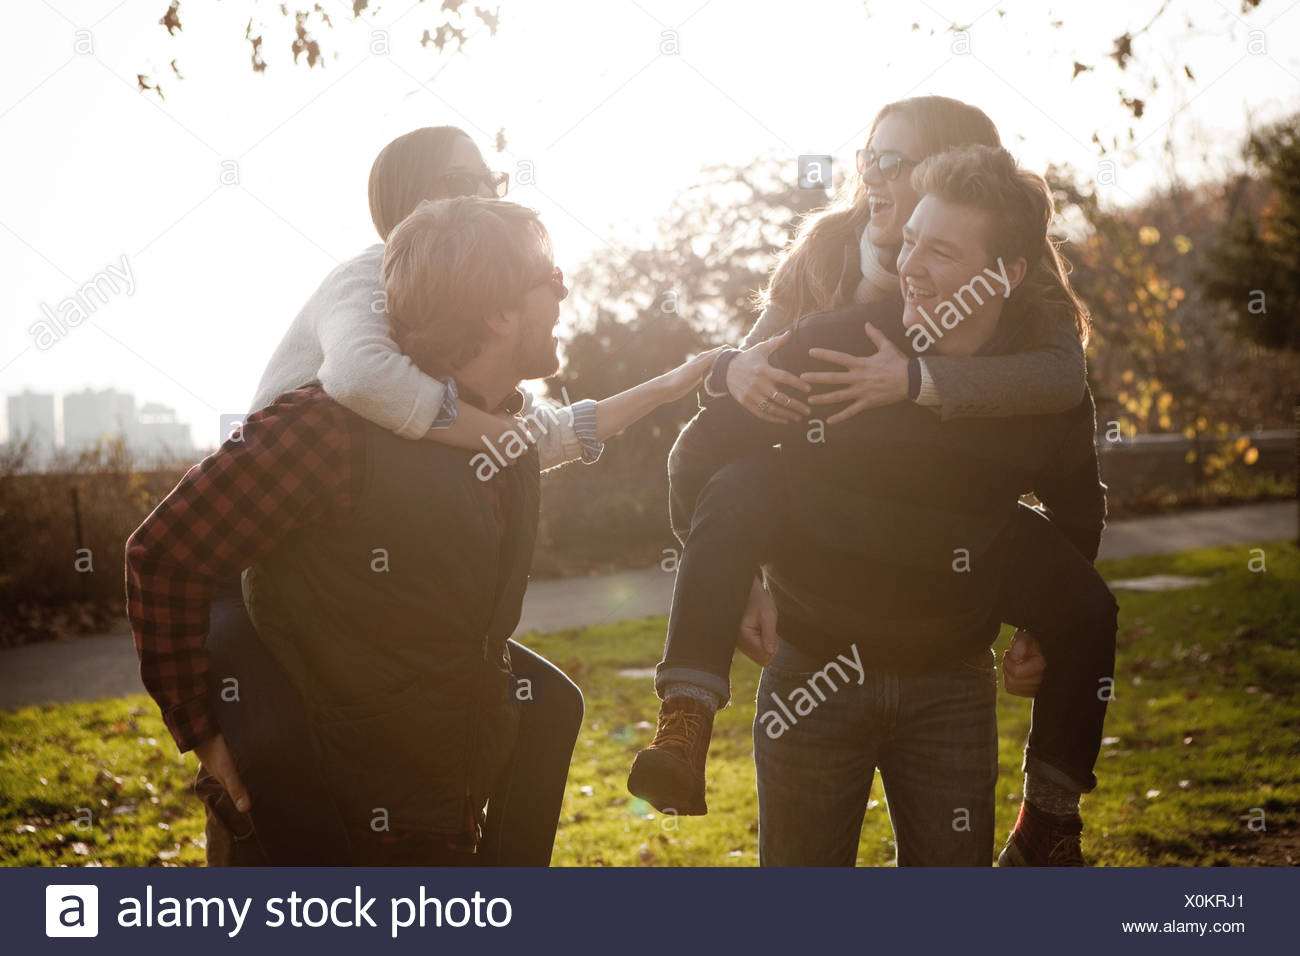 Couples in park - Stock Image